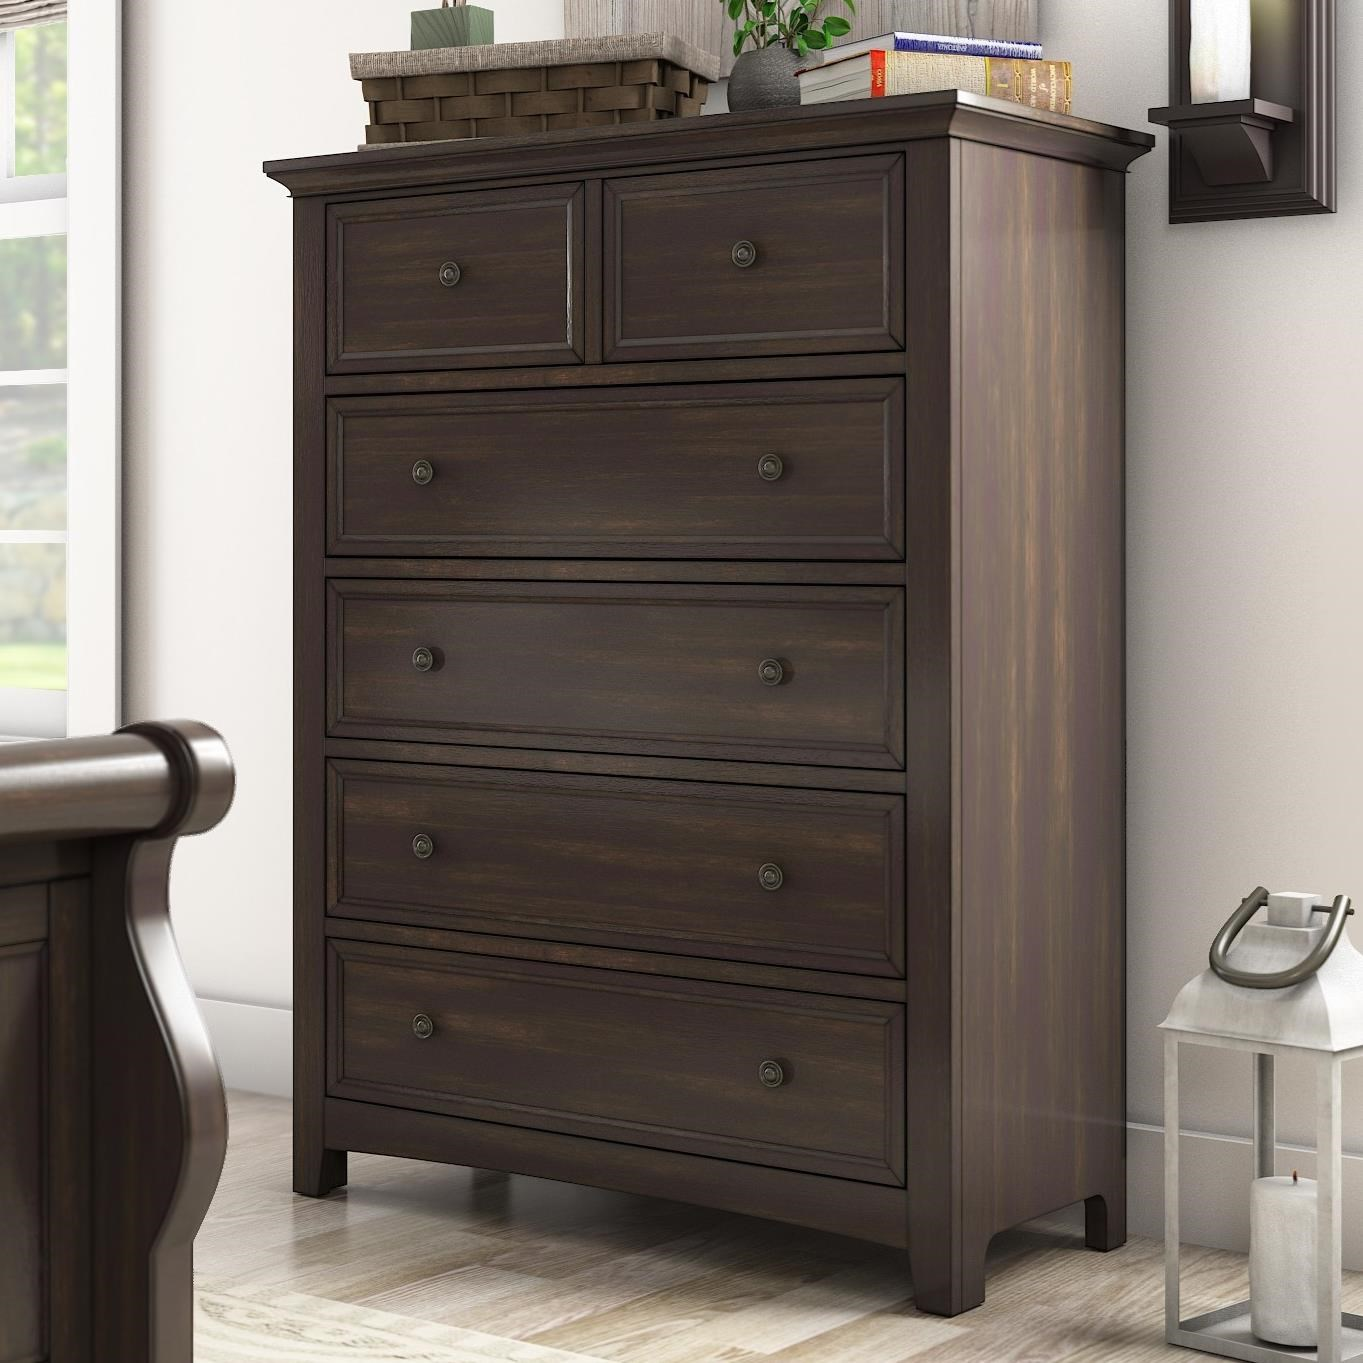 Homelegance 395 Chest of Drawers - Item Number: 395B-9BK